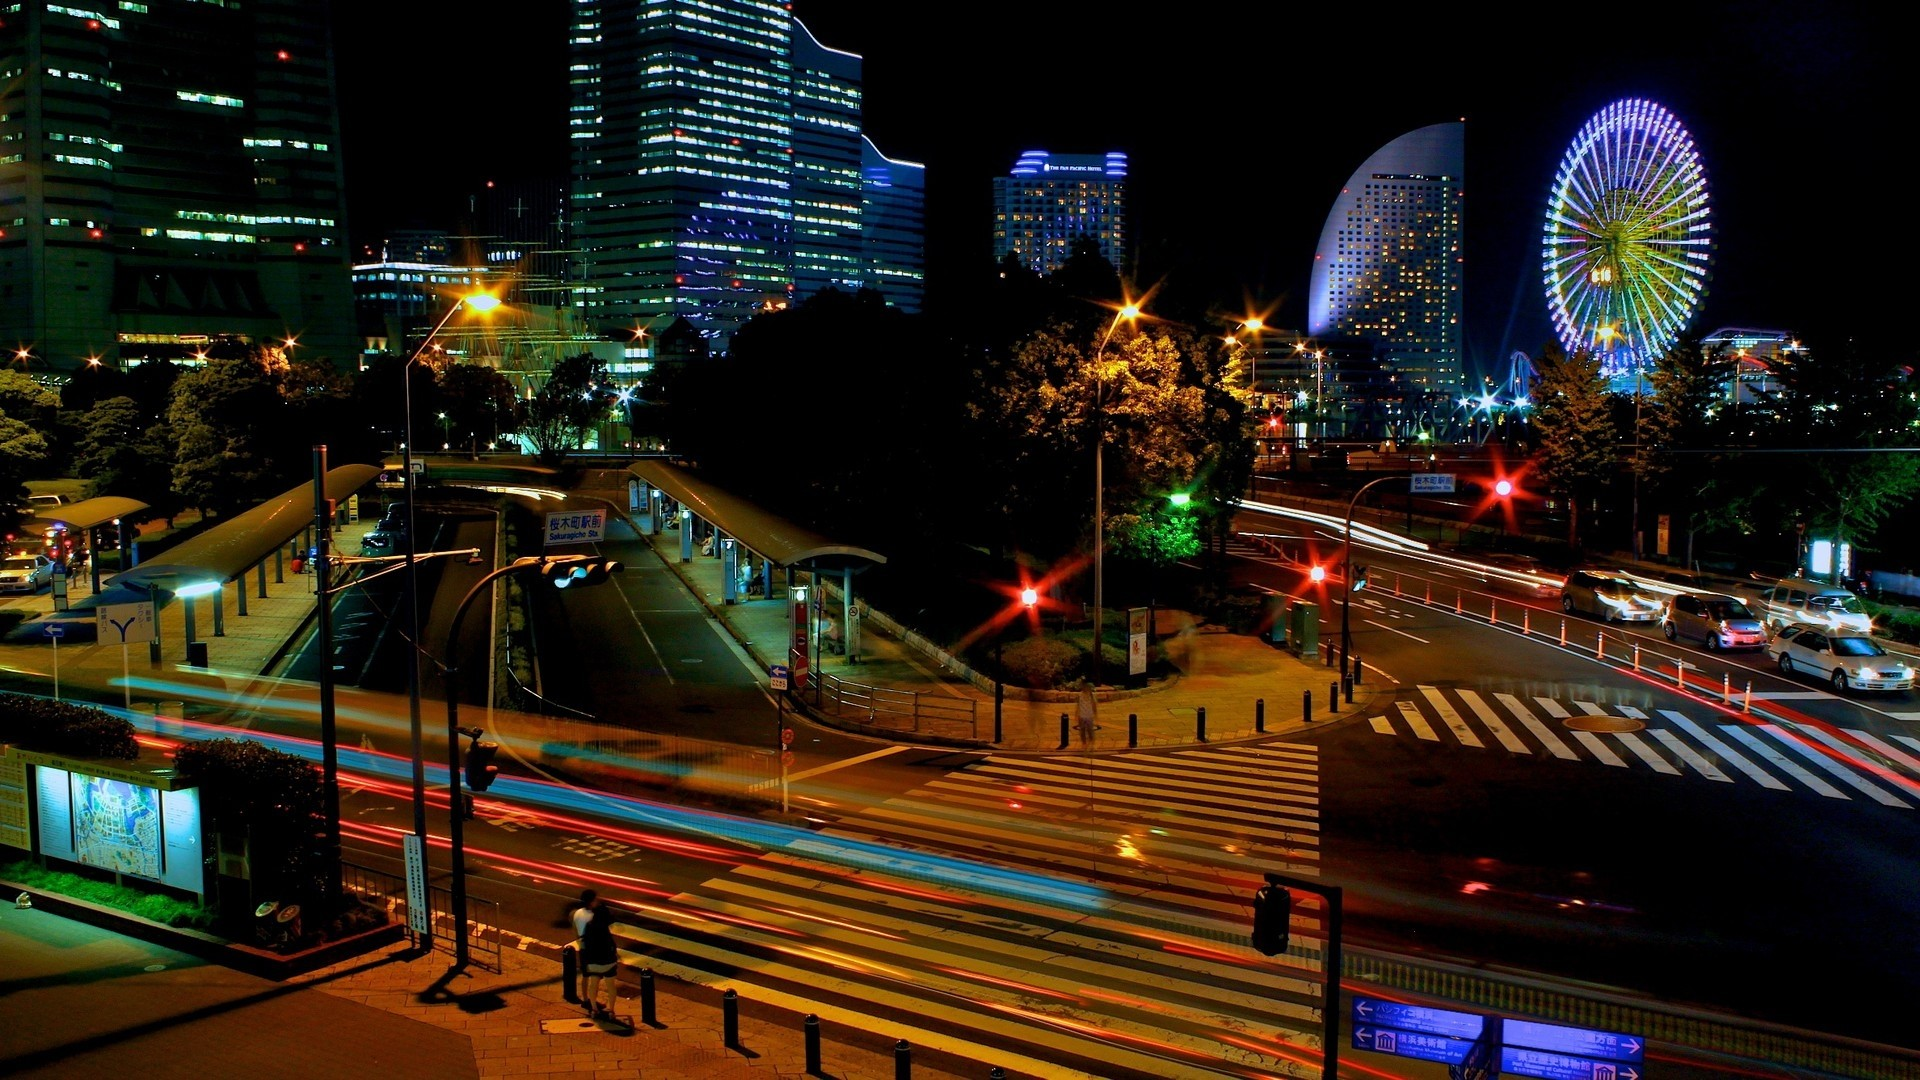 1920x1080 Preview wallpaper japan, tokyo, night, lights city, beautiful, cityscape